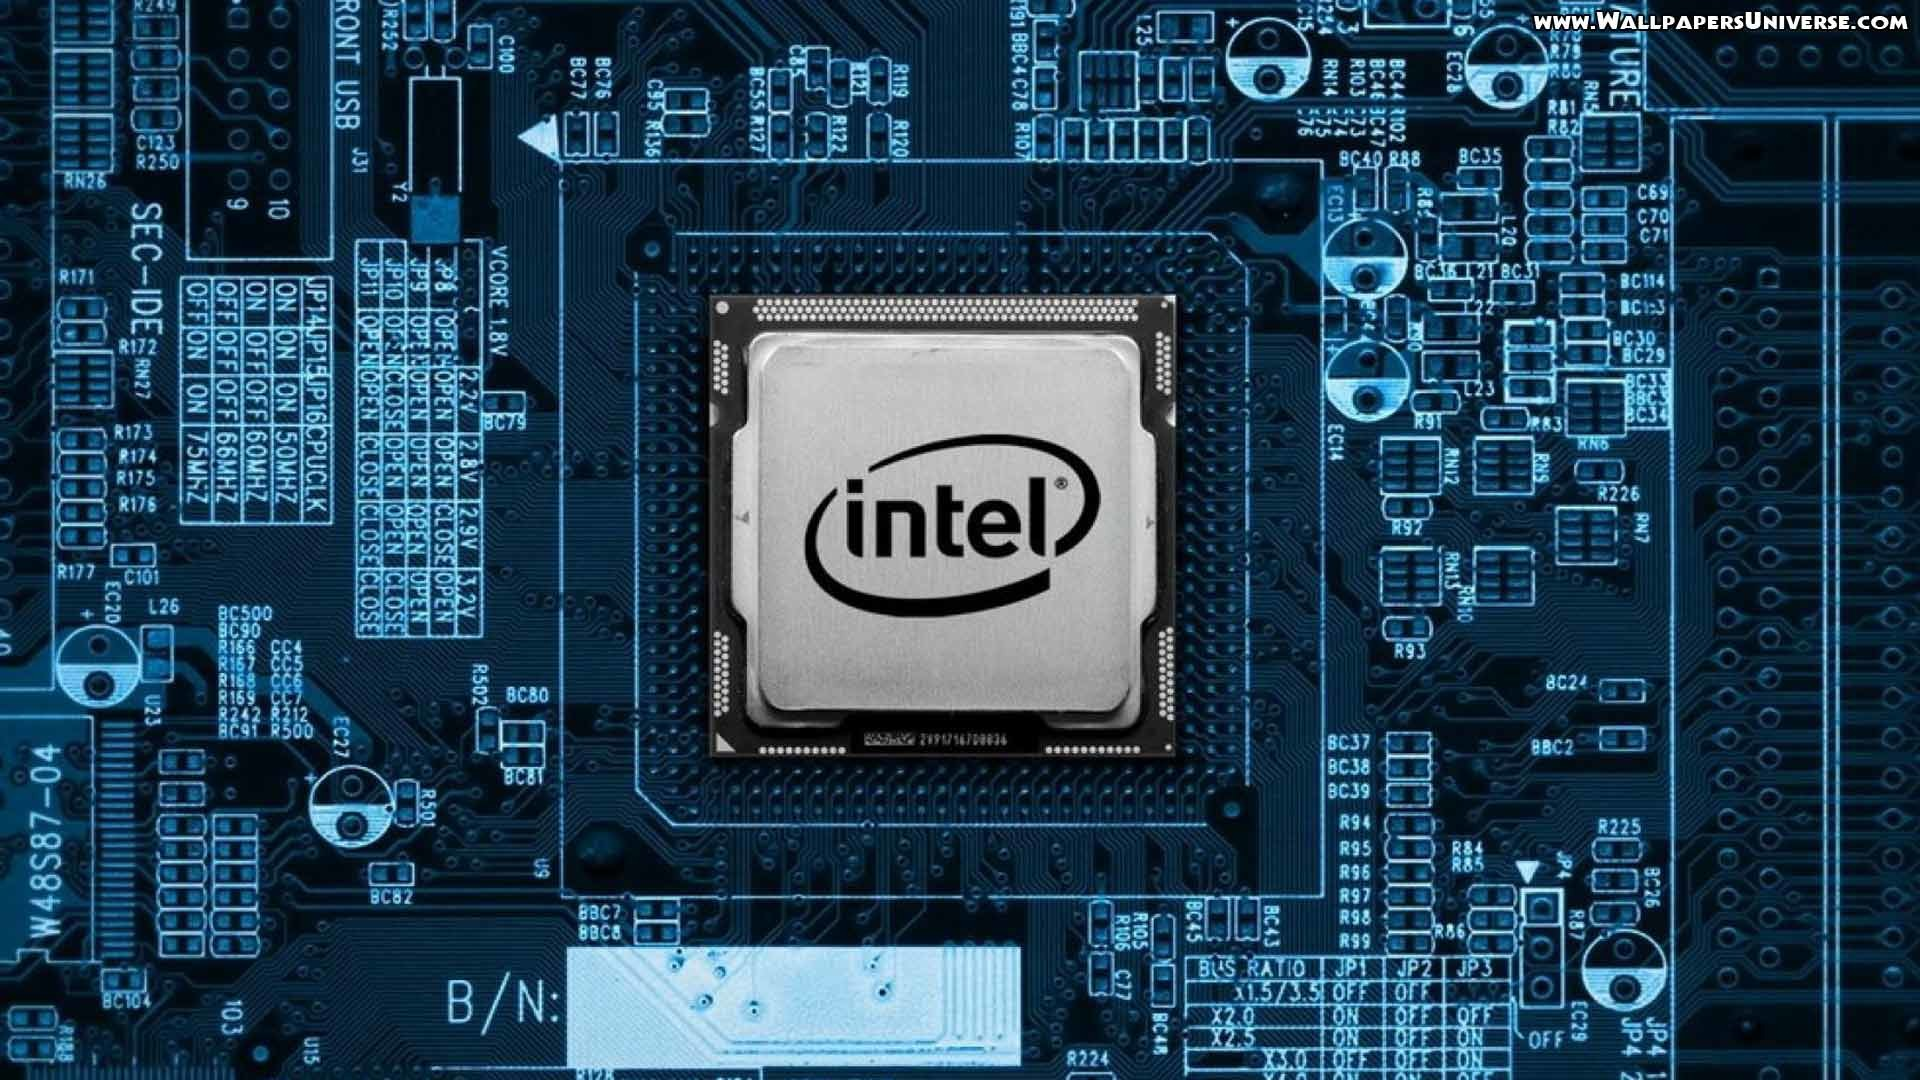 Core I7 Wallpapers